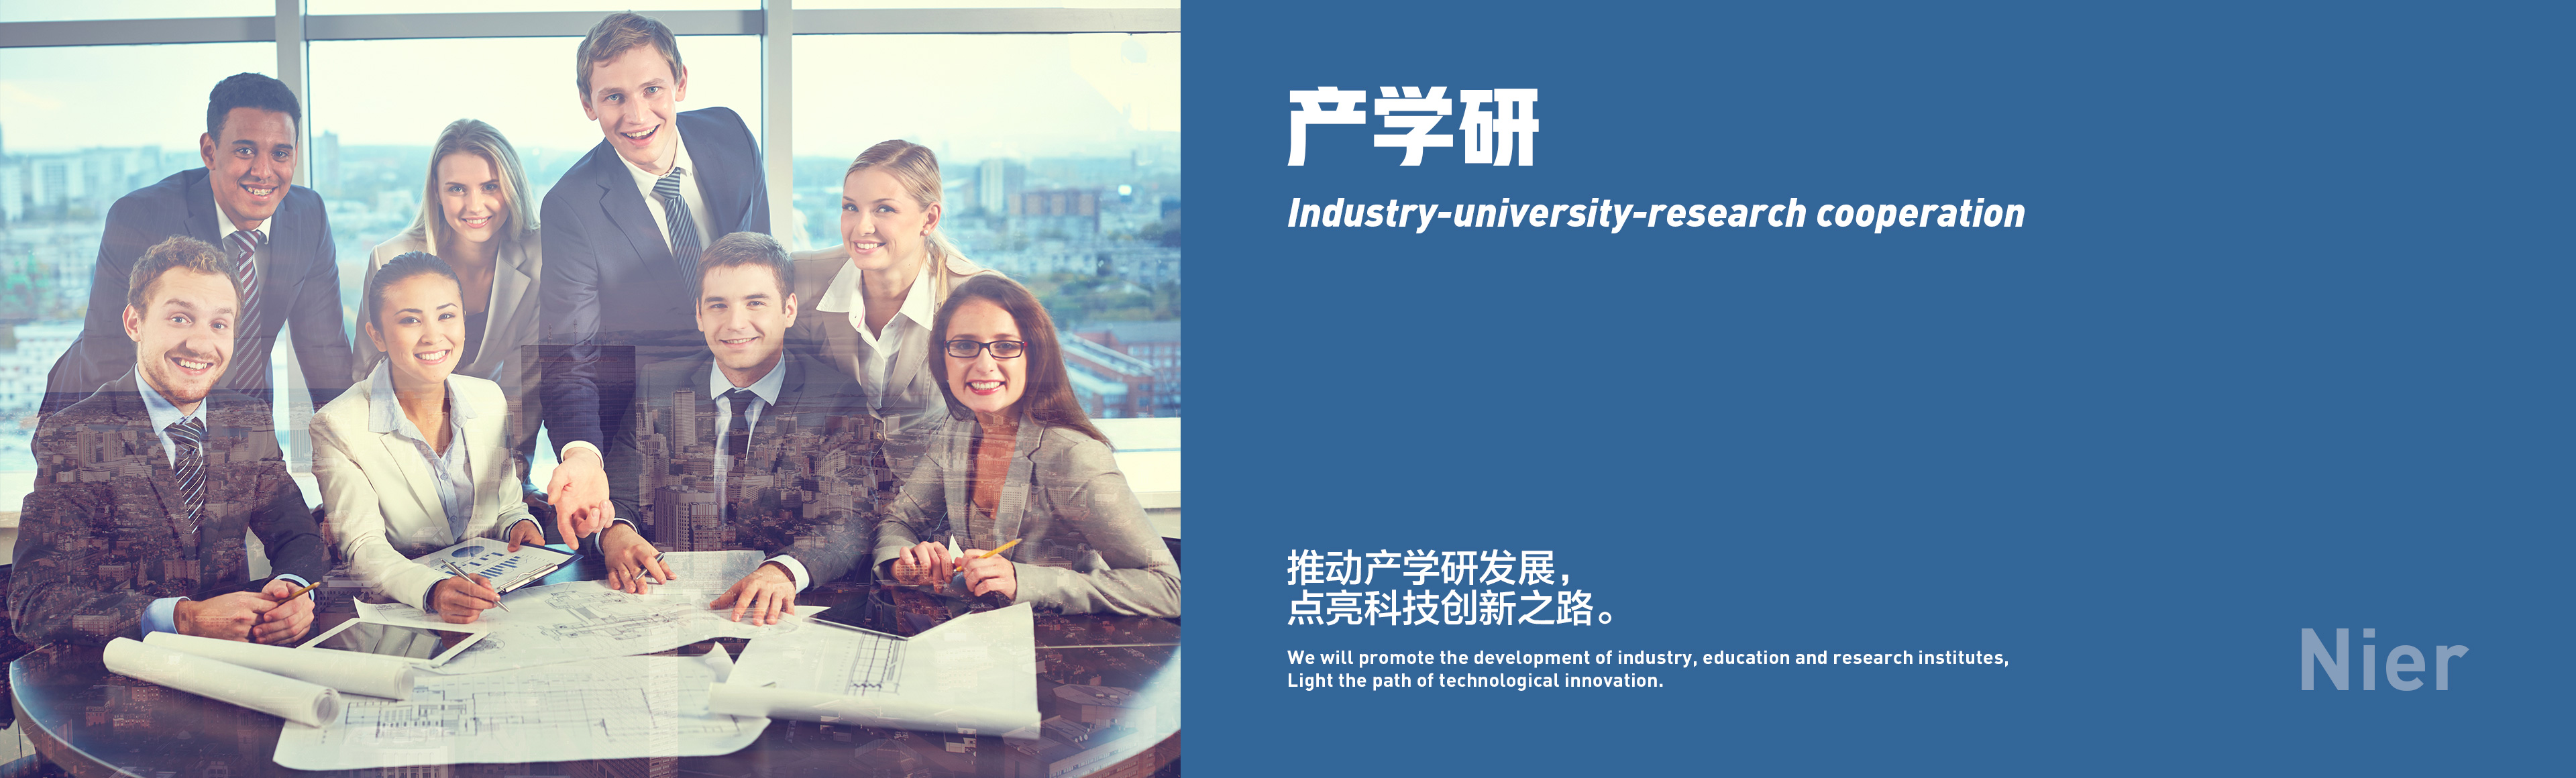 Industry-university research